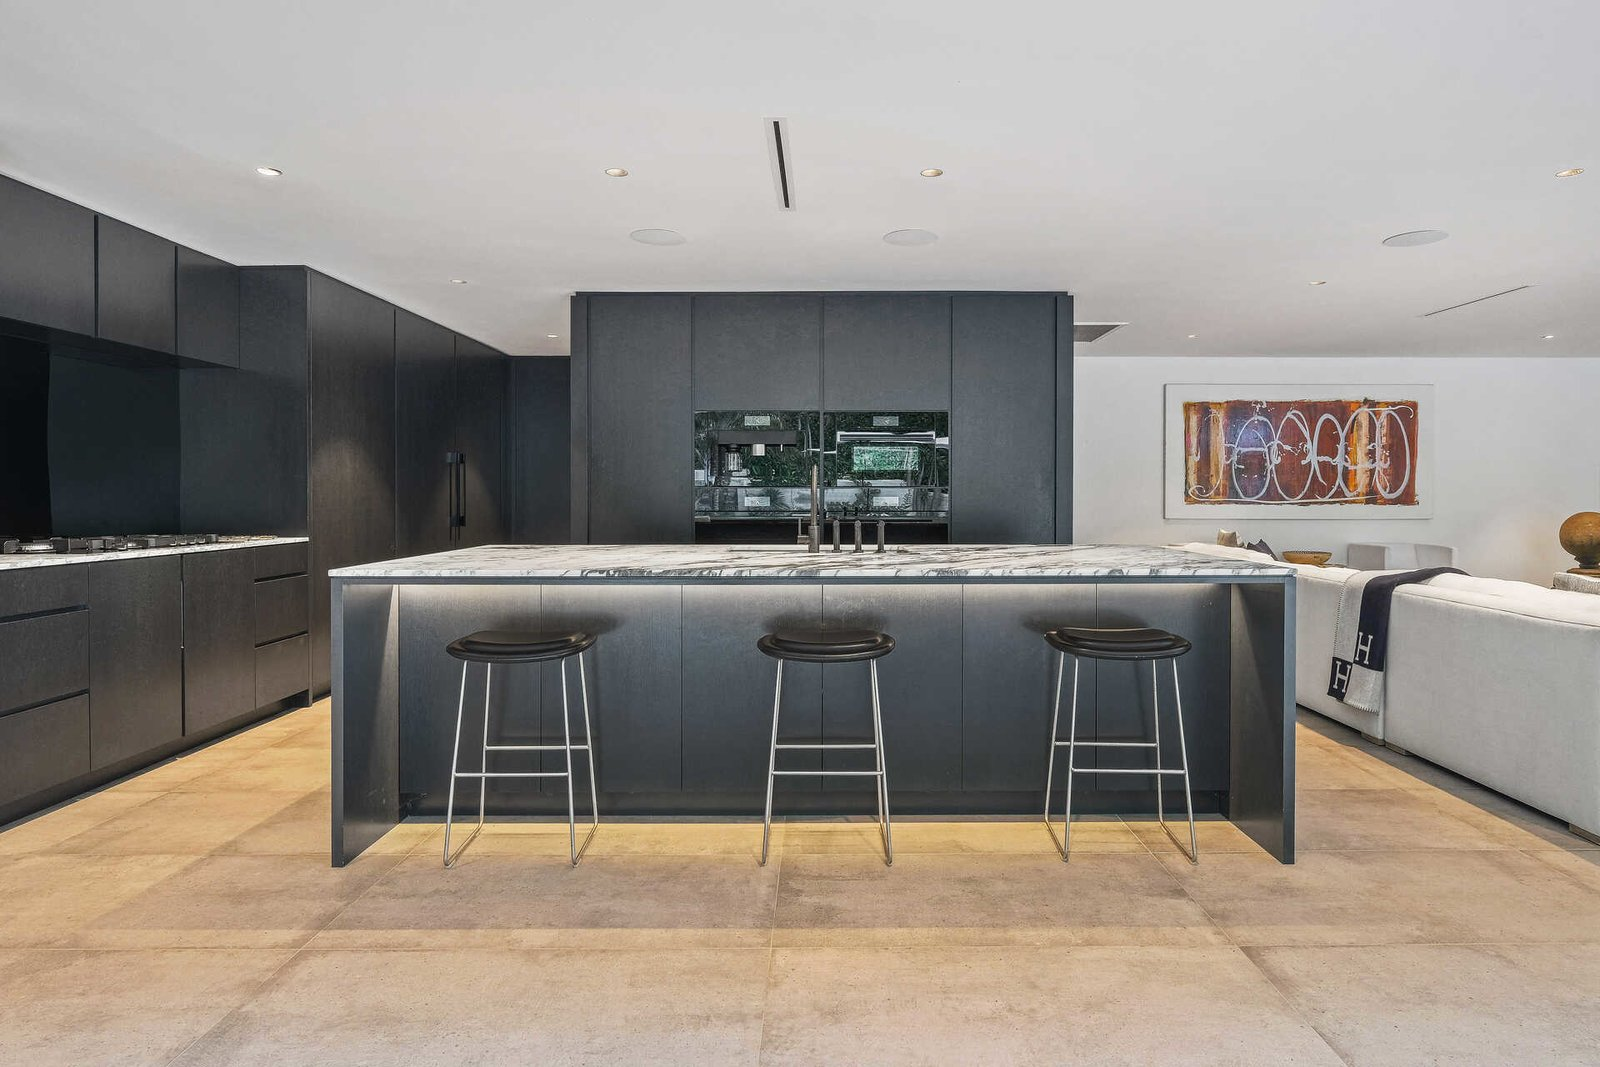 Kitchen, Stone Counter, Recessed Lighting, Wood Cabinet, Cement Tile Floor, and Concrete Floor  A Midcentury Modern Oasis in Bel Air